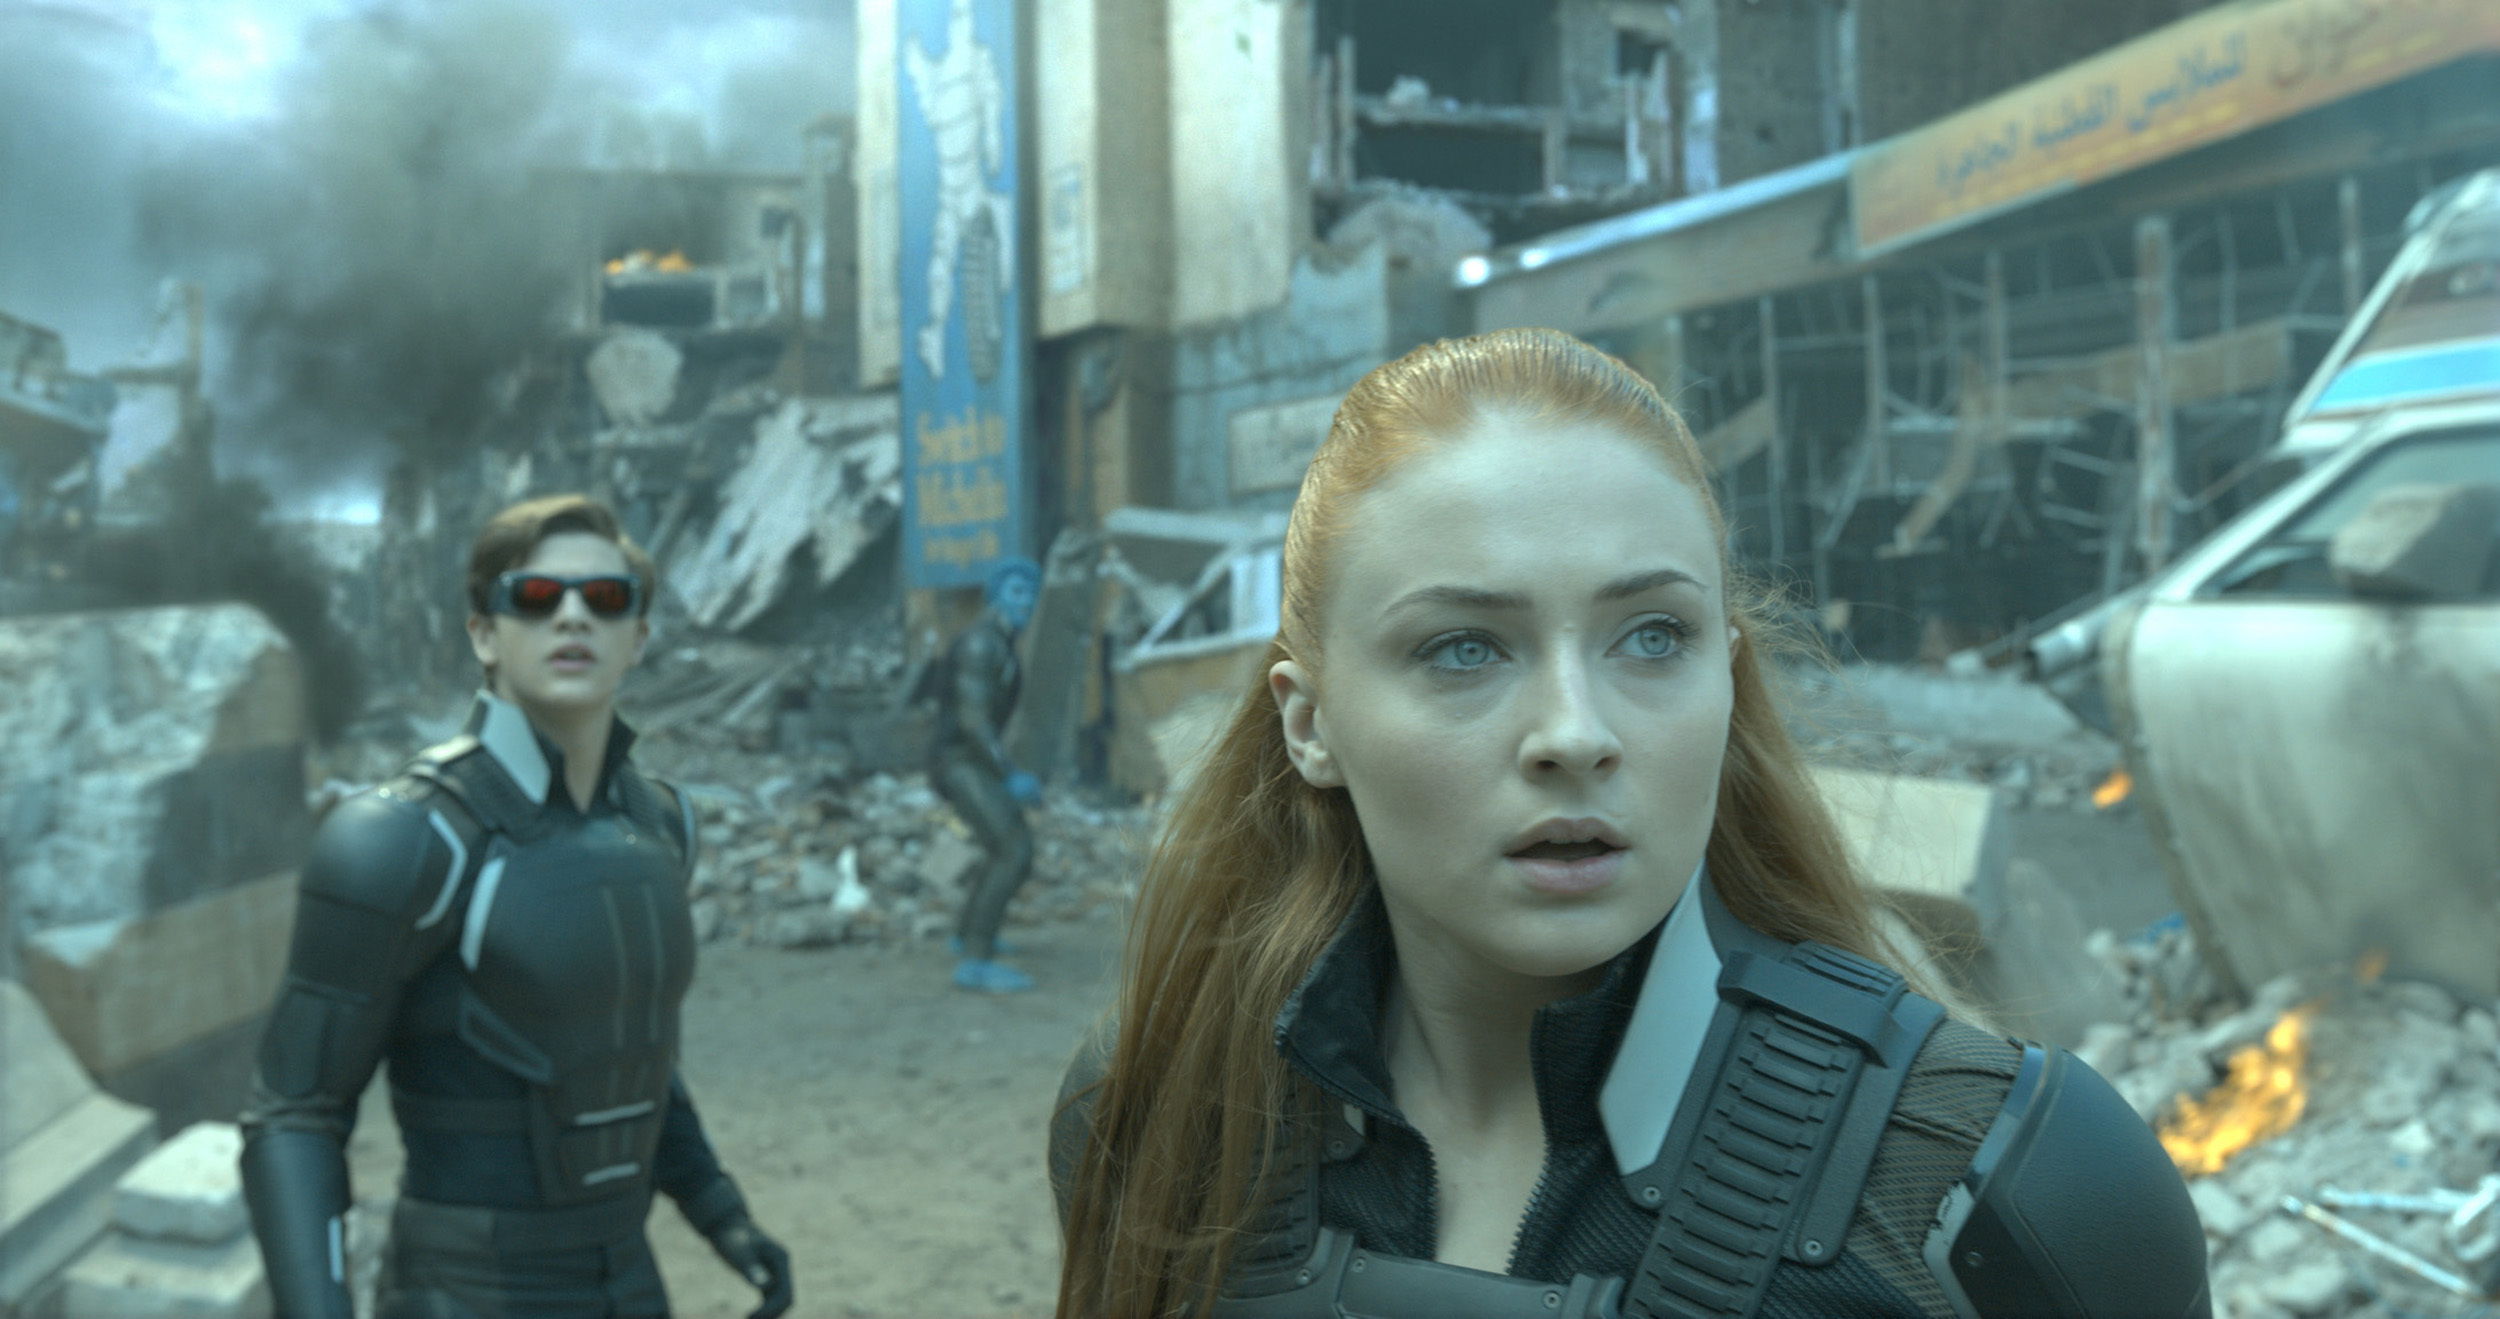 marvel best xmen movies rated